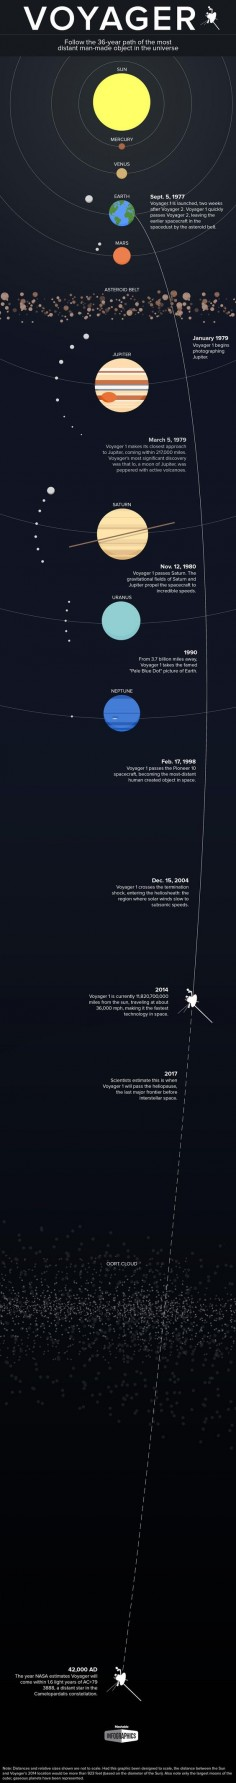 To celebrate Voyager's accomplishments and enduring legacy, we've charted some of the spacecraft's biggest moments.